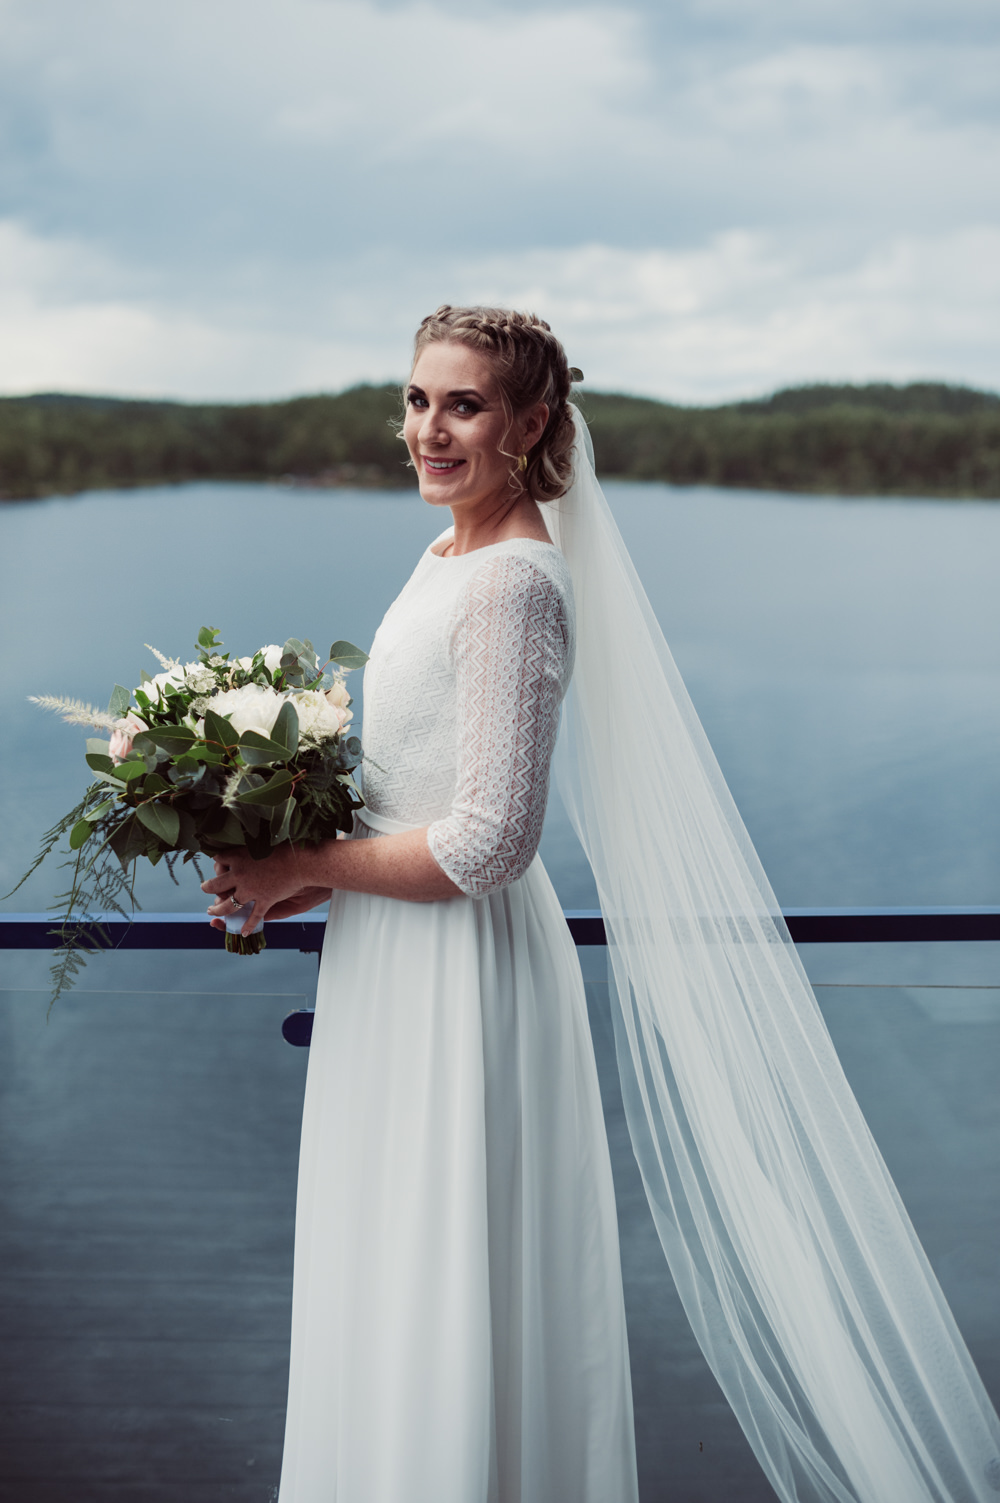 Bride Bridal Dress Gown Long Sleeves Lace Veil Norway Wedding Maximilian Photography